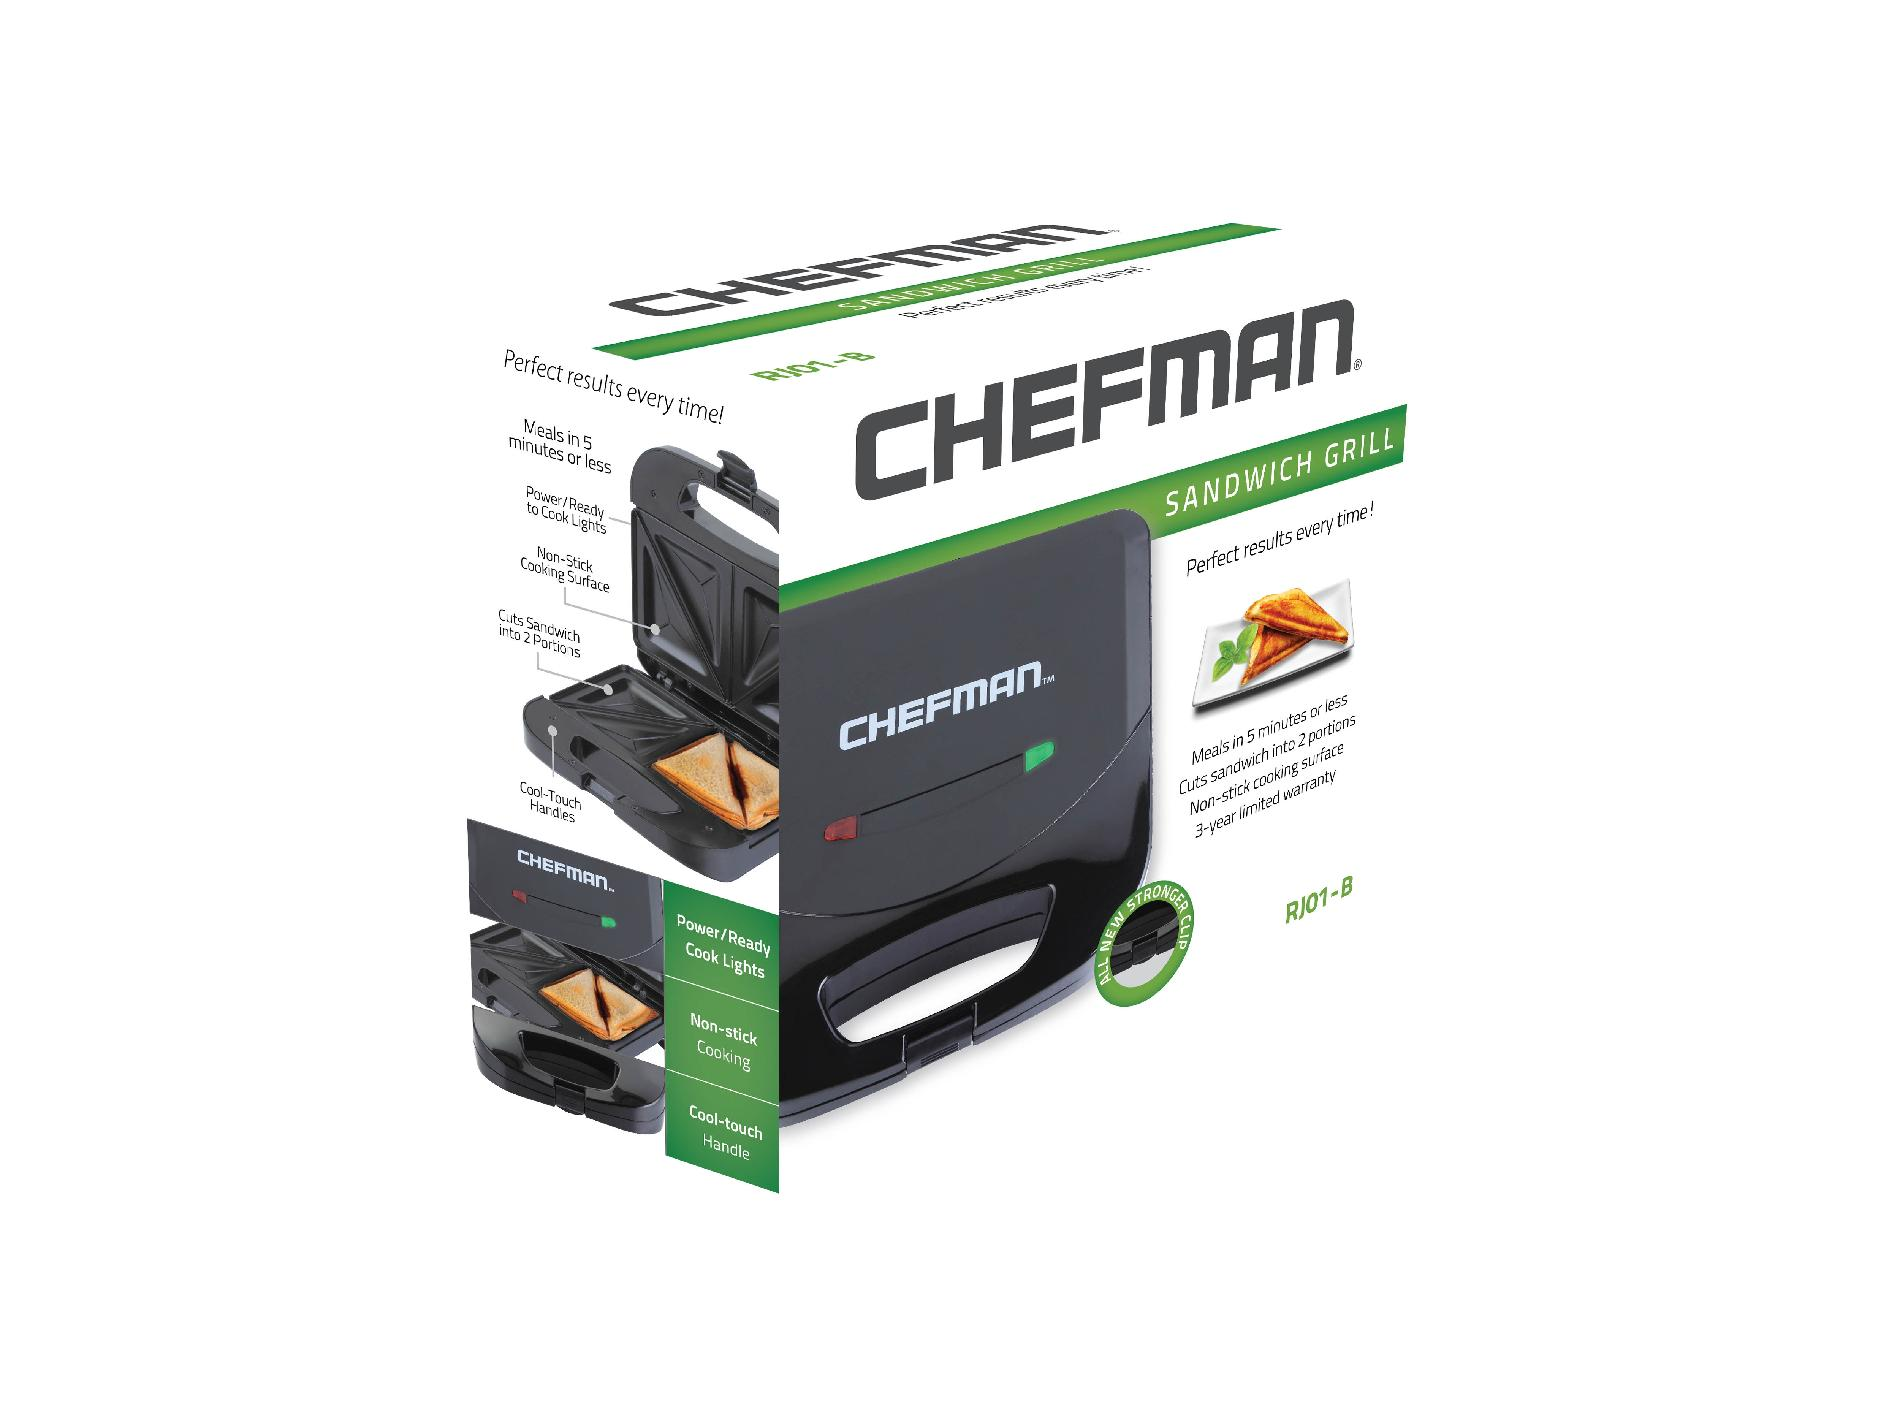 Chefman Black Sandwich Grill Maker